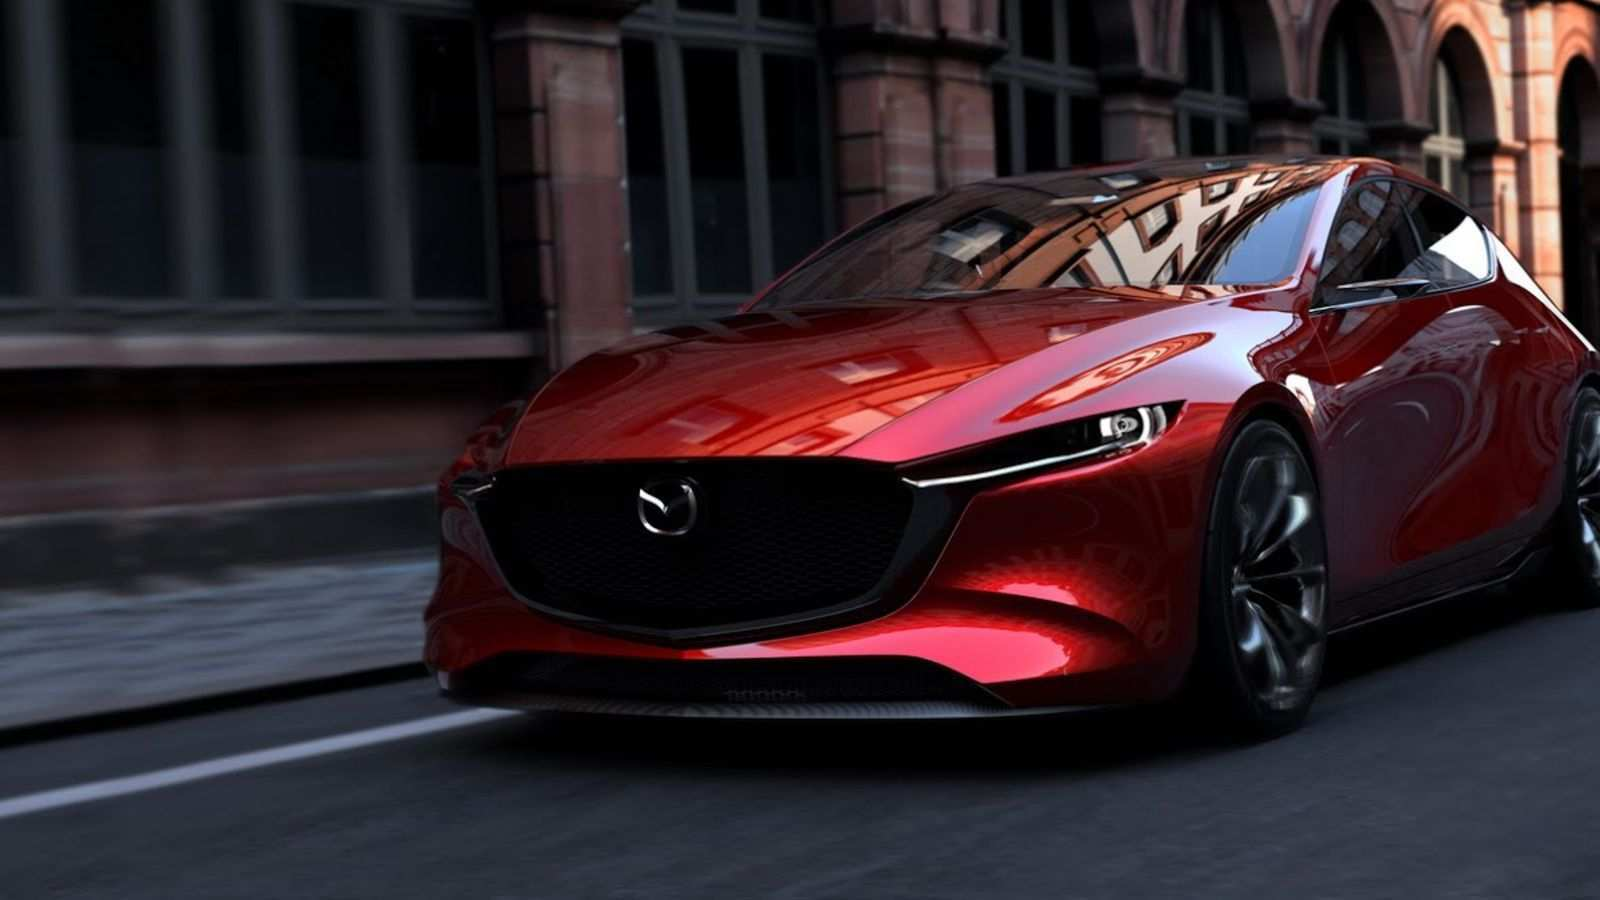 84 Gallery of Best Mazda Sport 2019 Exterior Review by Best Mazda Sport 2019 Exterior